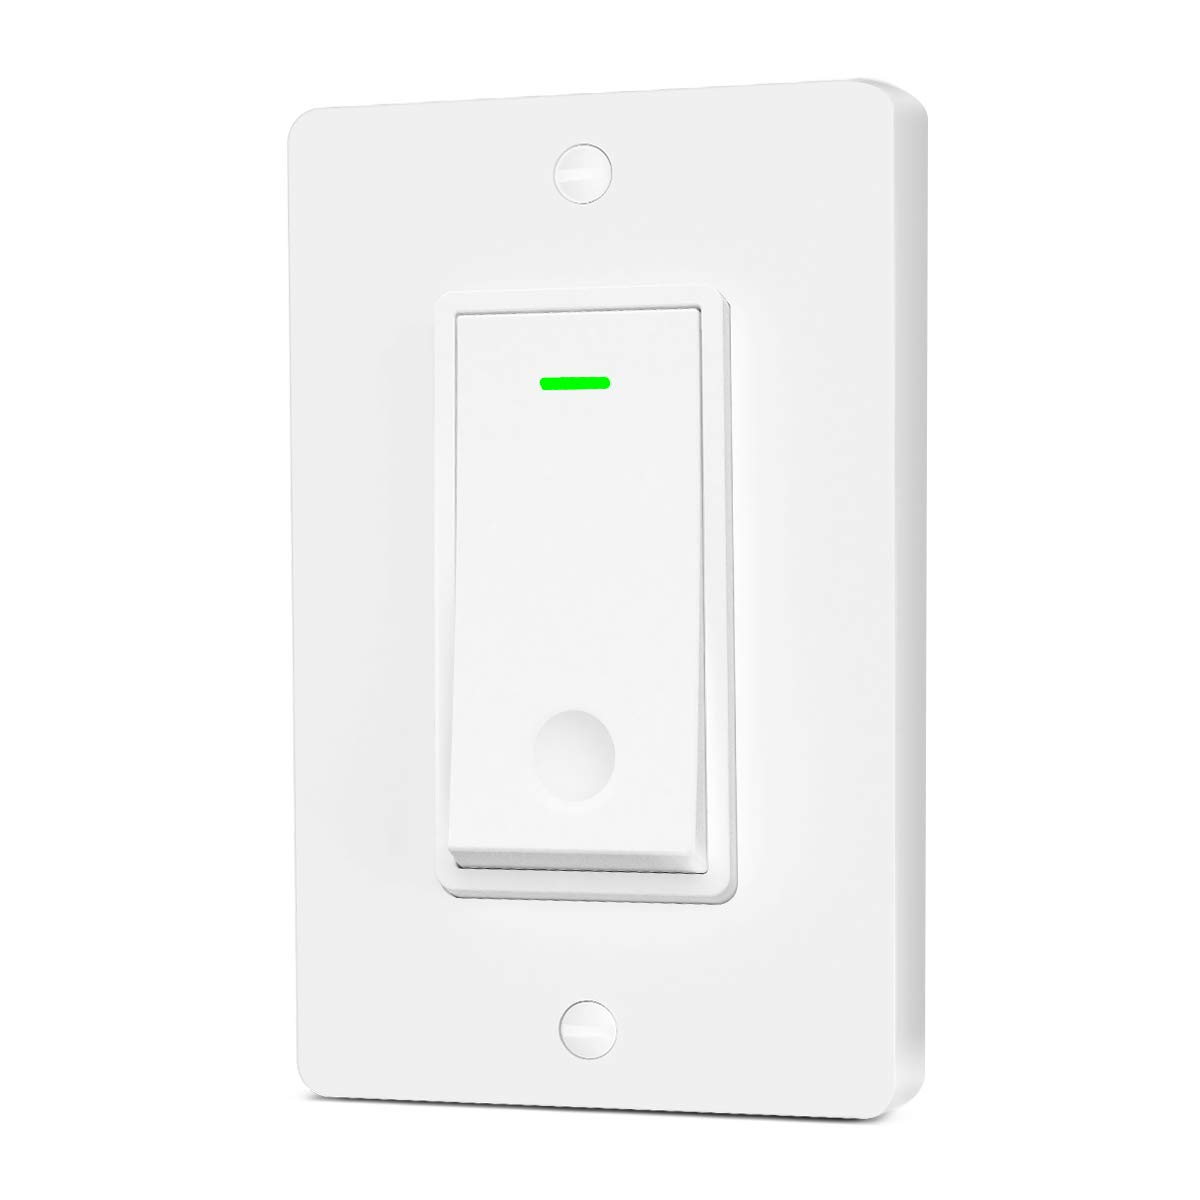 Aoycocr Smart Light Switch Single Pole - Neutral Wire Needed, 2.4Ghz Wi-Fi Light Switch, Easy to Install, Works with Alexa, Google Assistant & IFTTT, Schedule, Remote Control, FCC Listed